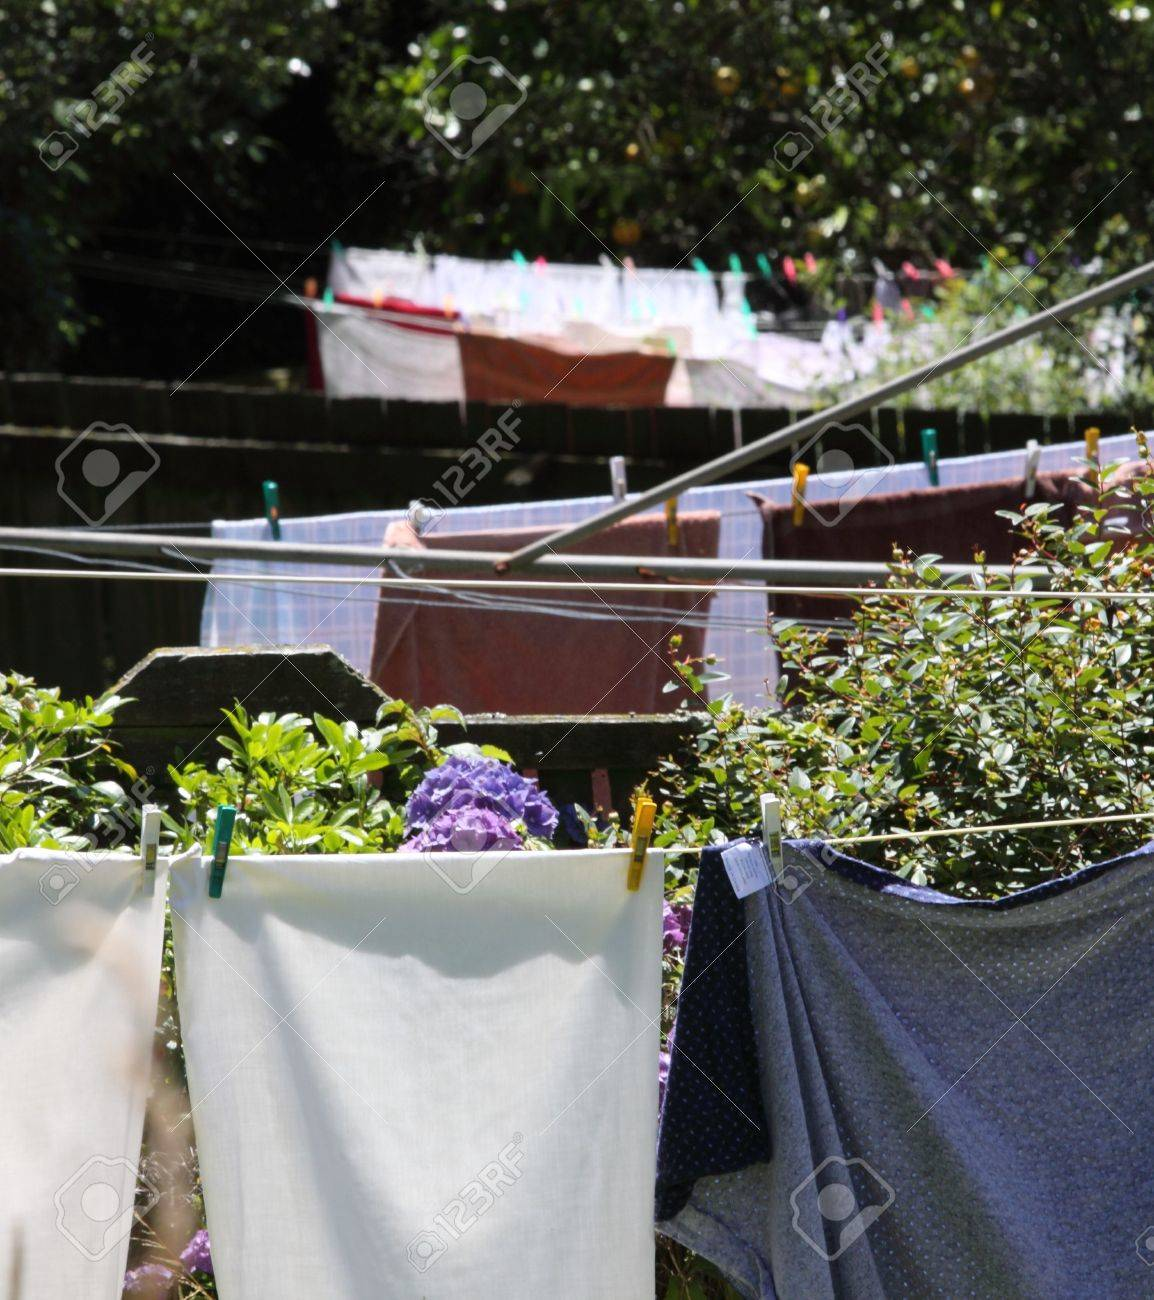 Washing on 3 clotheslines in a row in backyards Stock Photo - 7537787